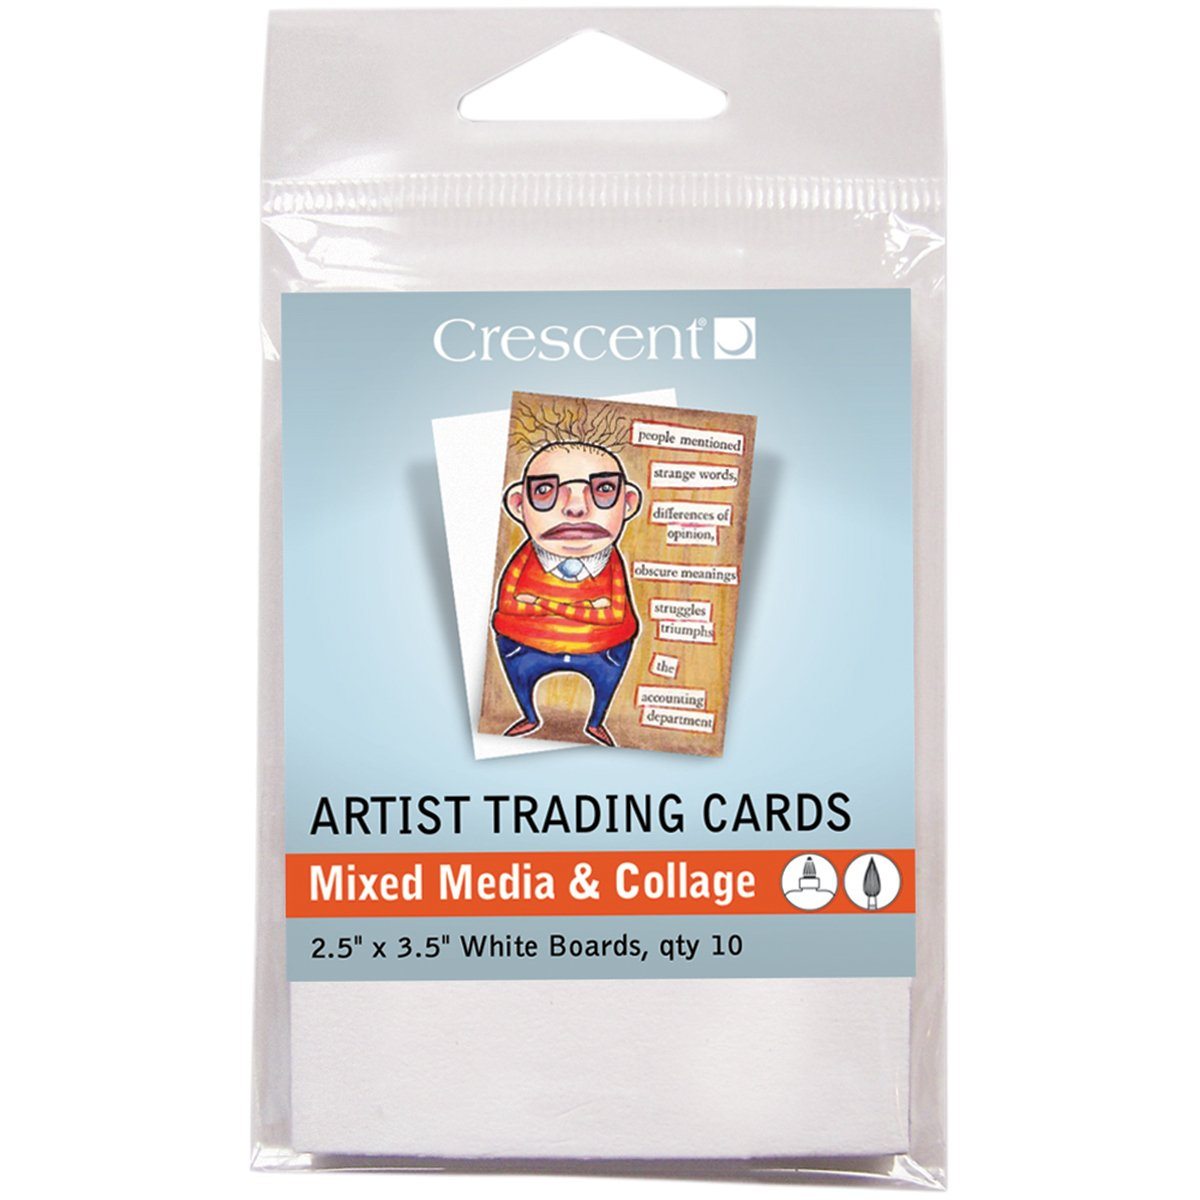 Crescent Cardboard Artist Mixed Media & Collage Trading Cards (10 Pack), 2.5' by 3.5', White